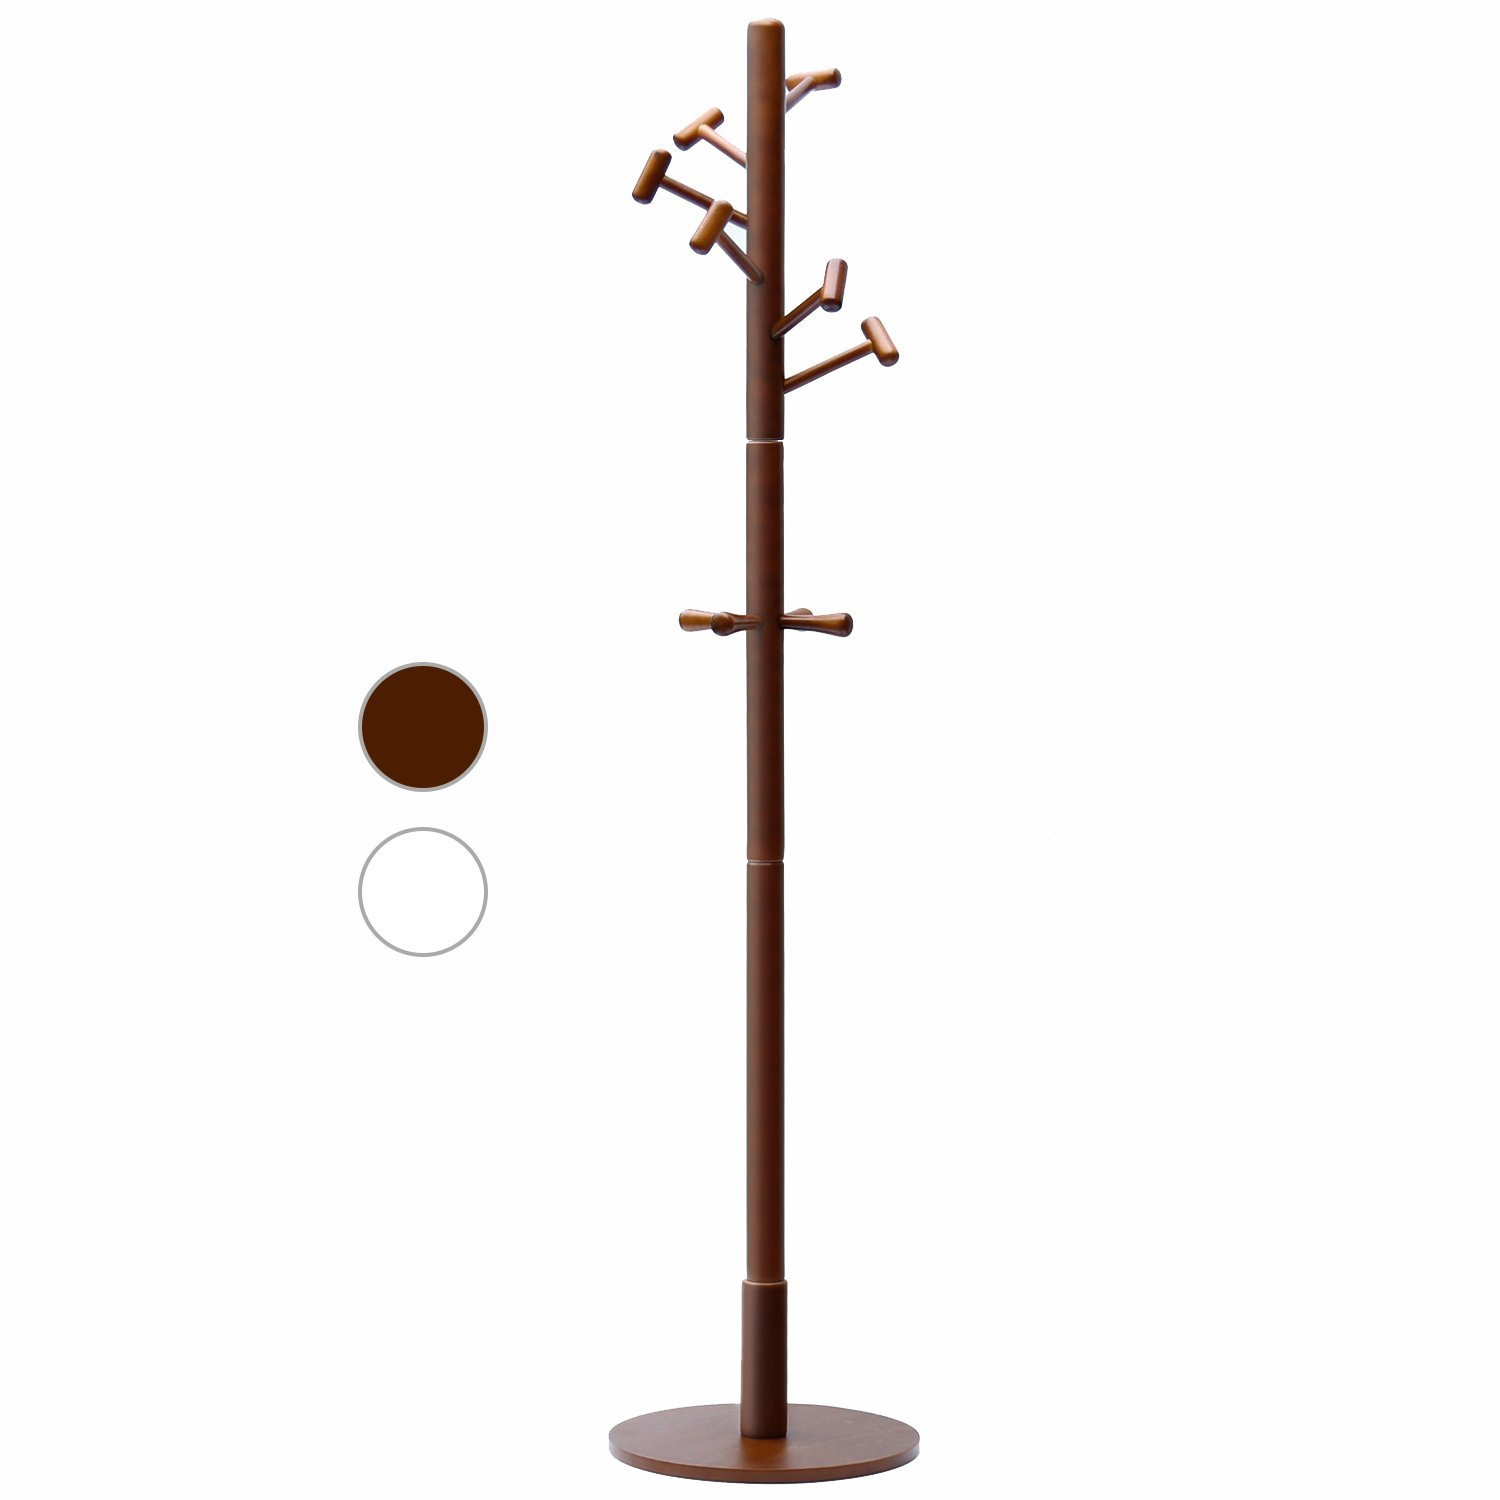 LCH Wood Standing Coat Rack Hall Tree Coat Tree with 10 Hammer Shaped Hooks, Coffee